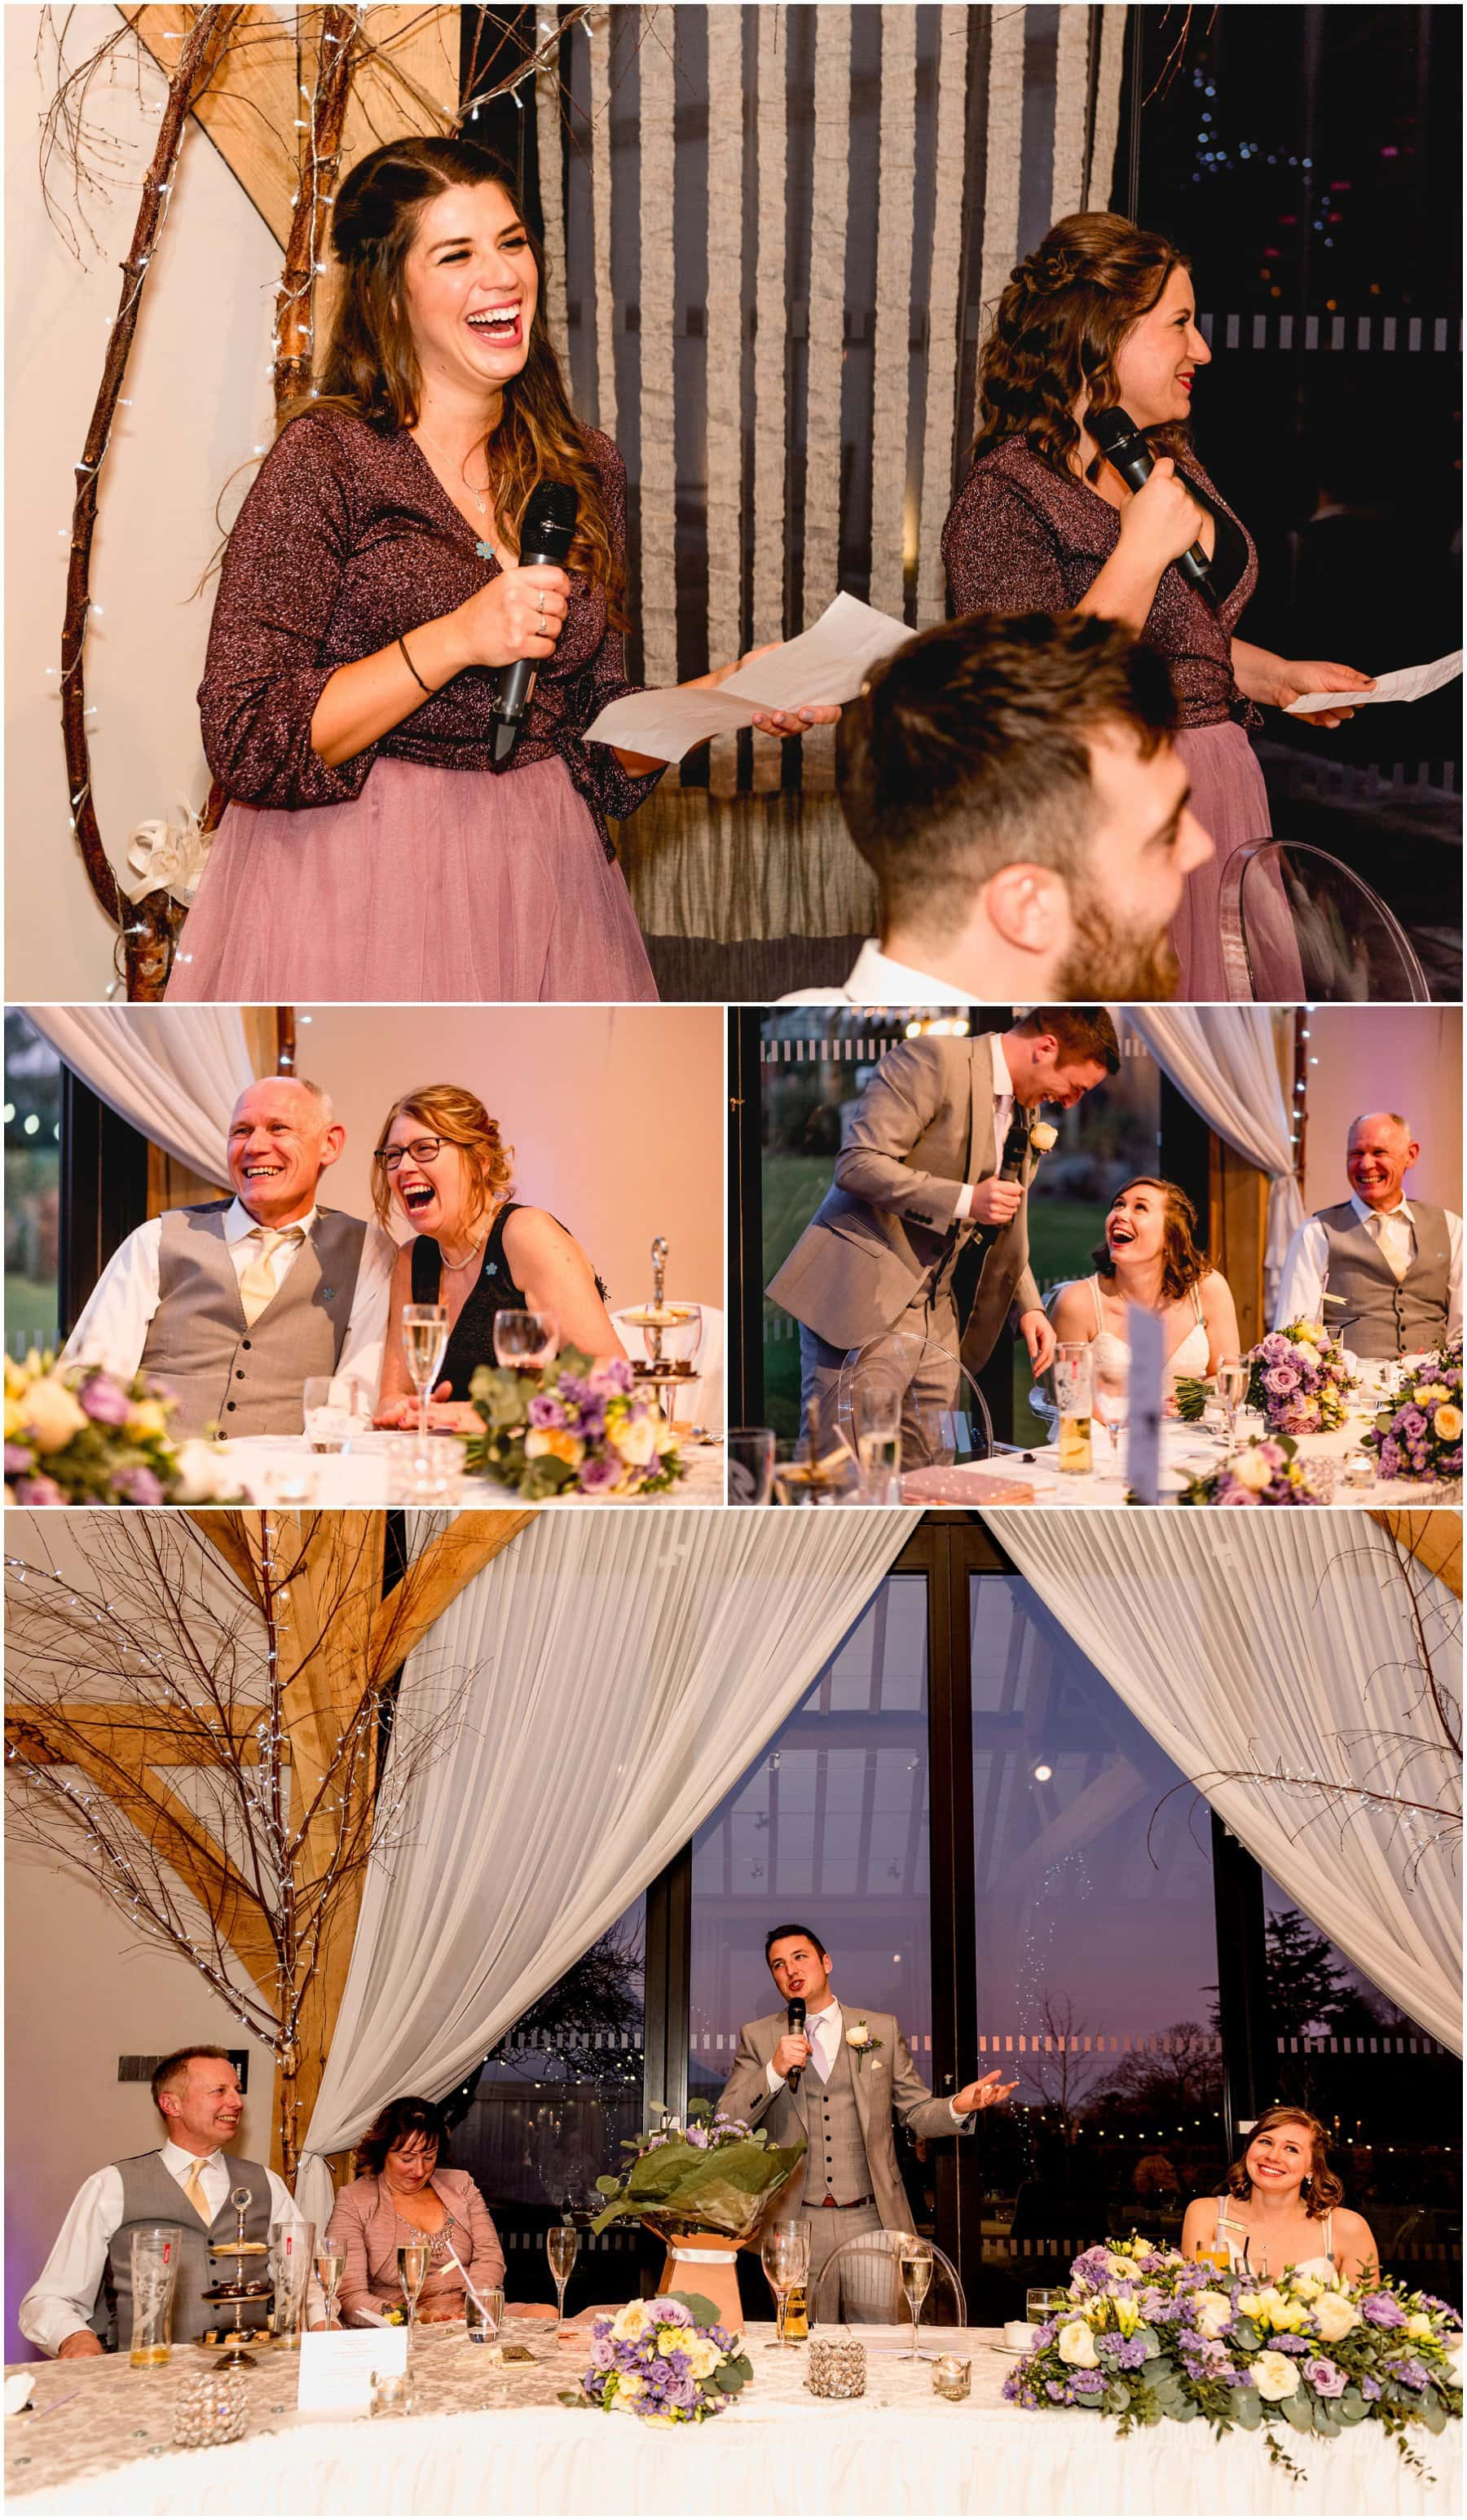 Candid photos from wedding speeches in Wedding breakfast room at Redhouse Barns